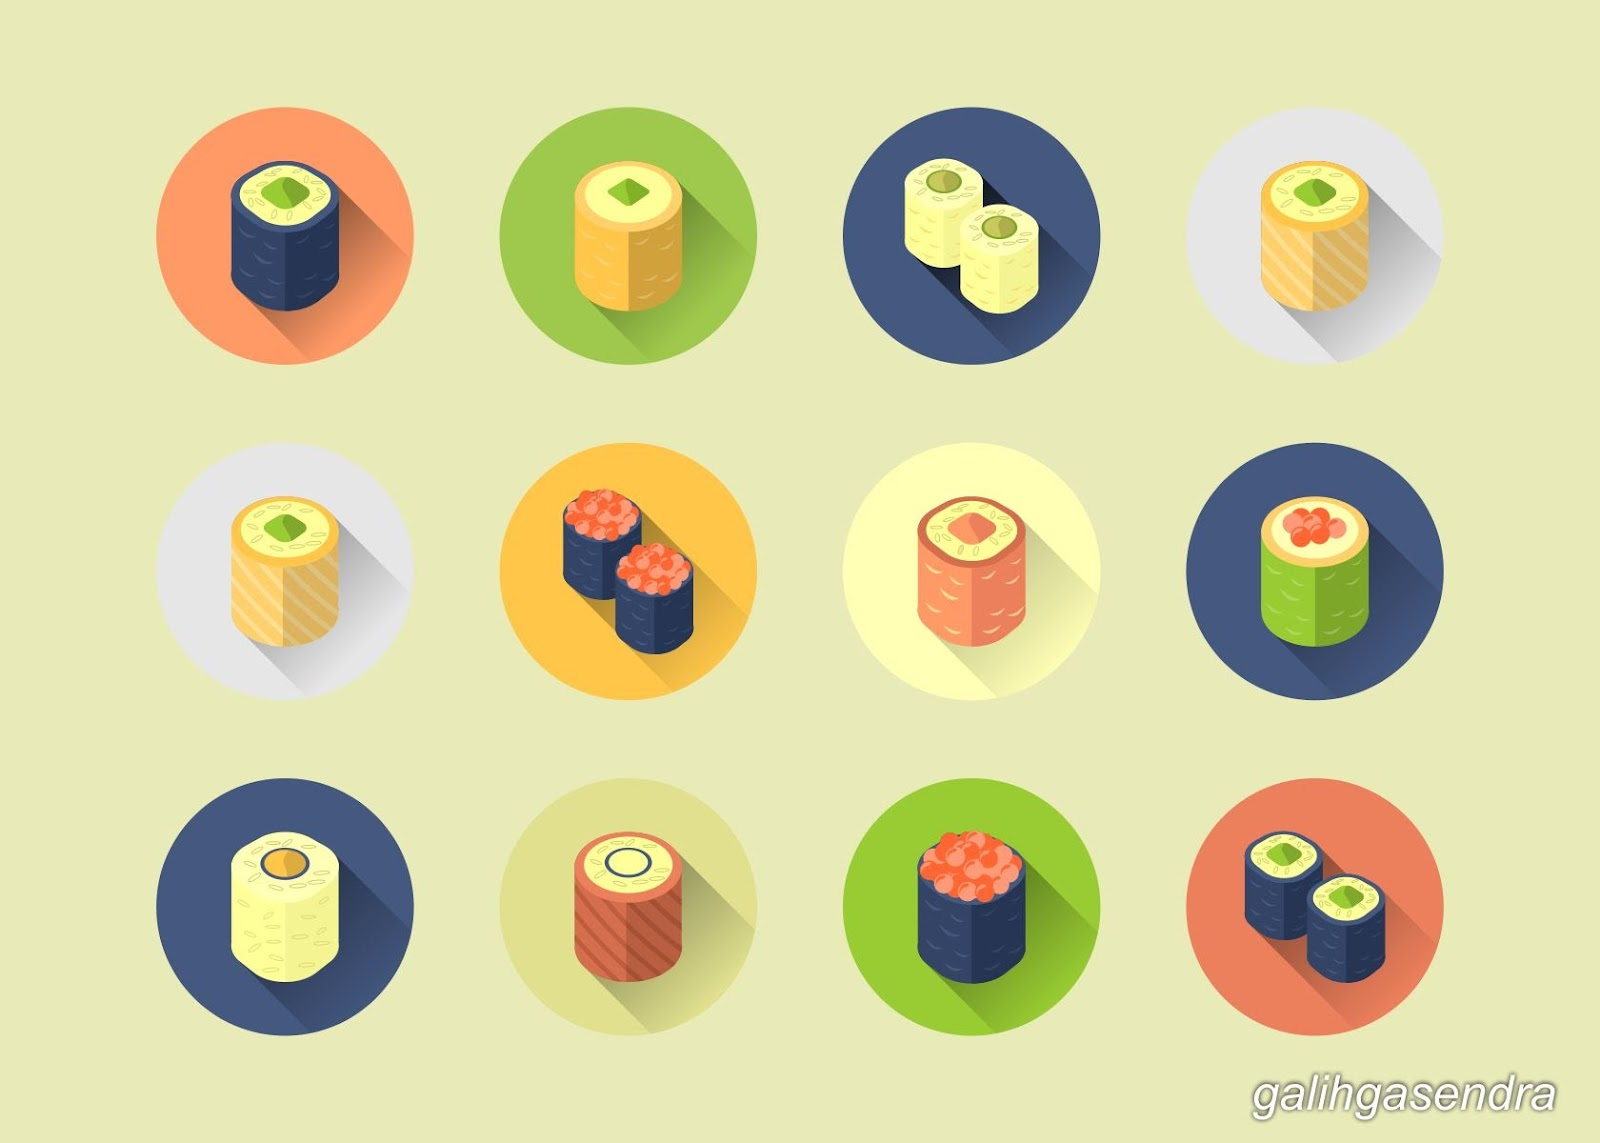 Free Download CorelDraw Vector Flat Design Rolled Sushi Icon